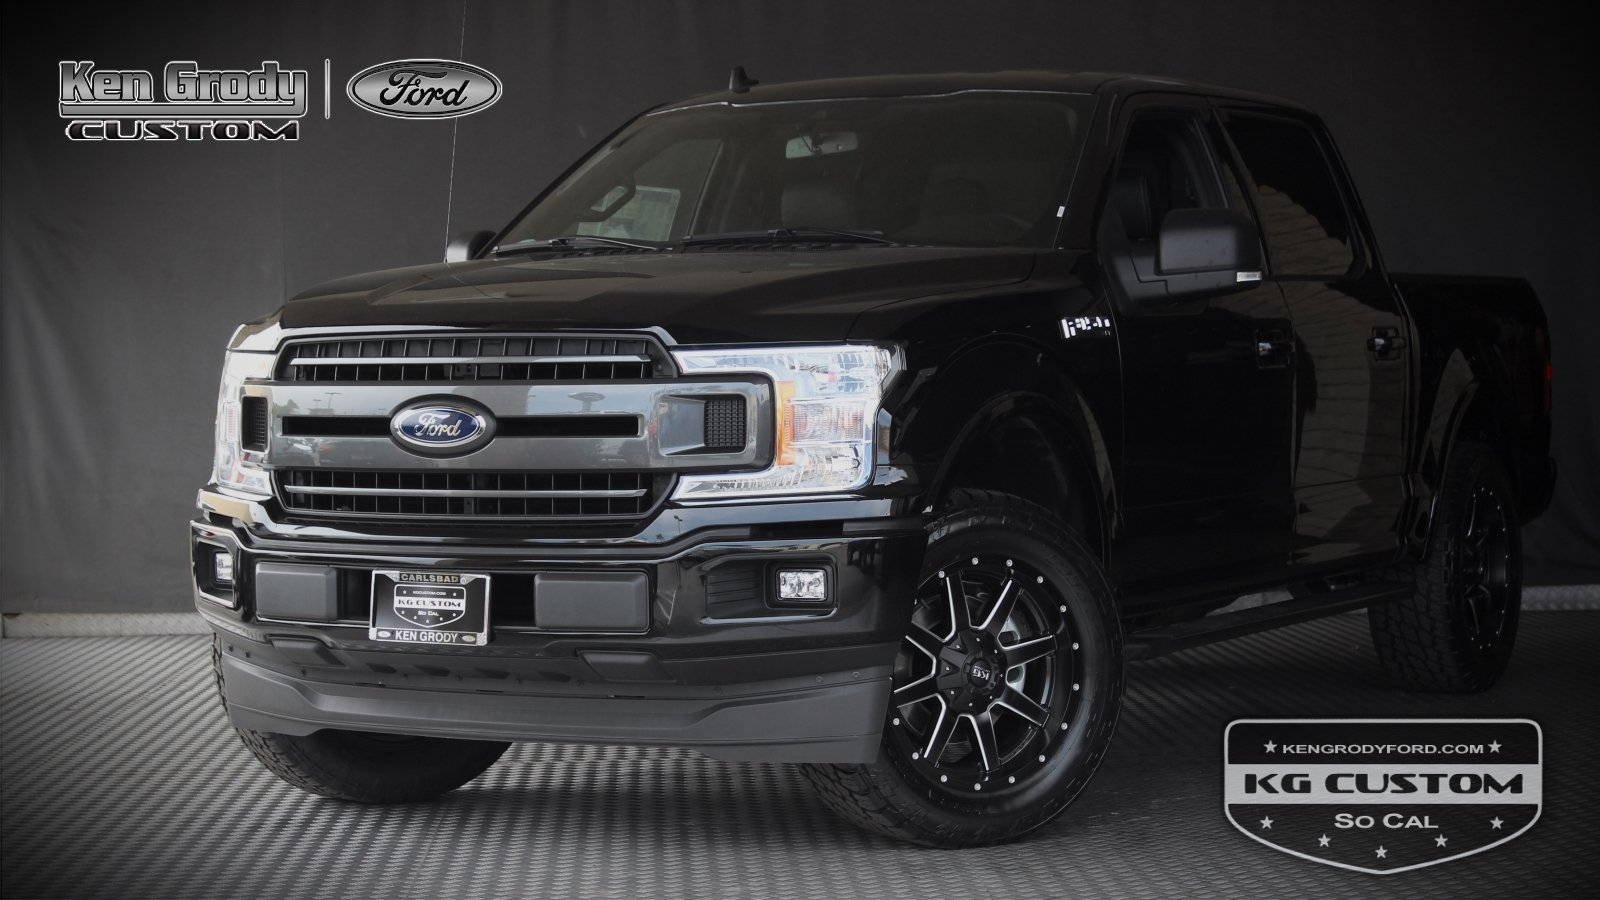 New 2019 Ford F-150 XLT KG CUSTOM